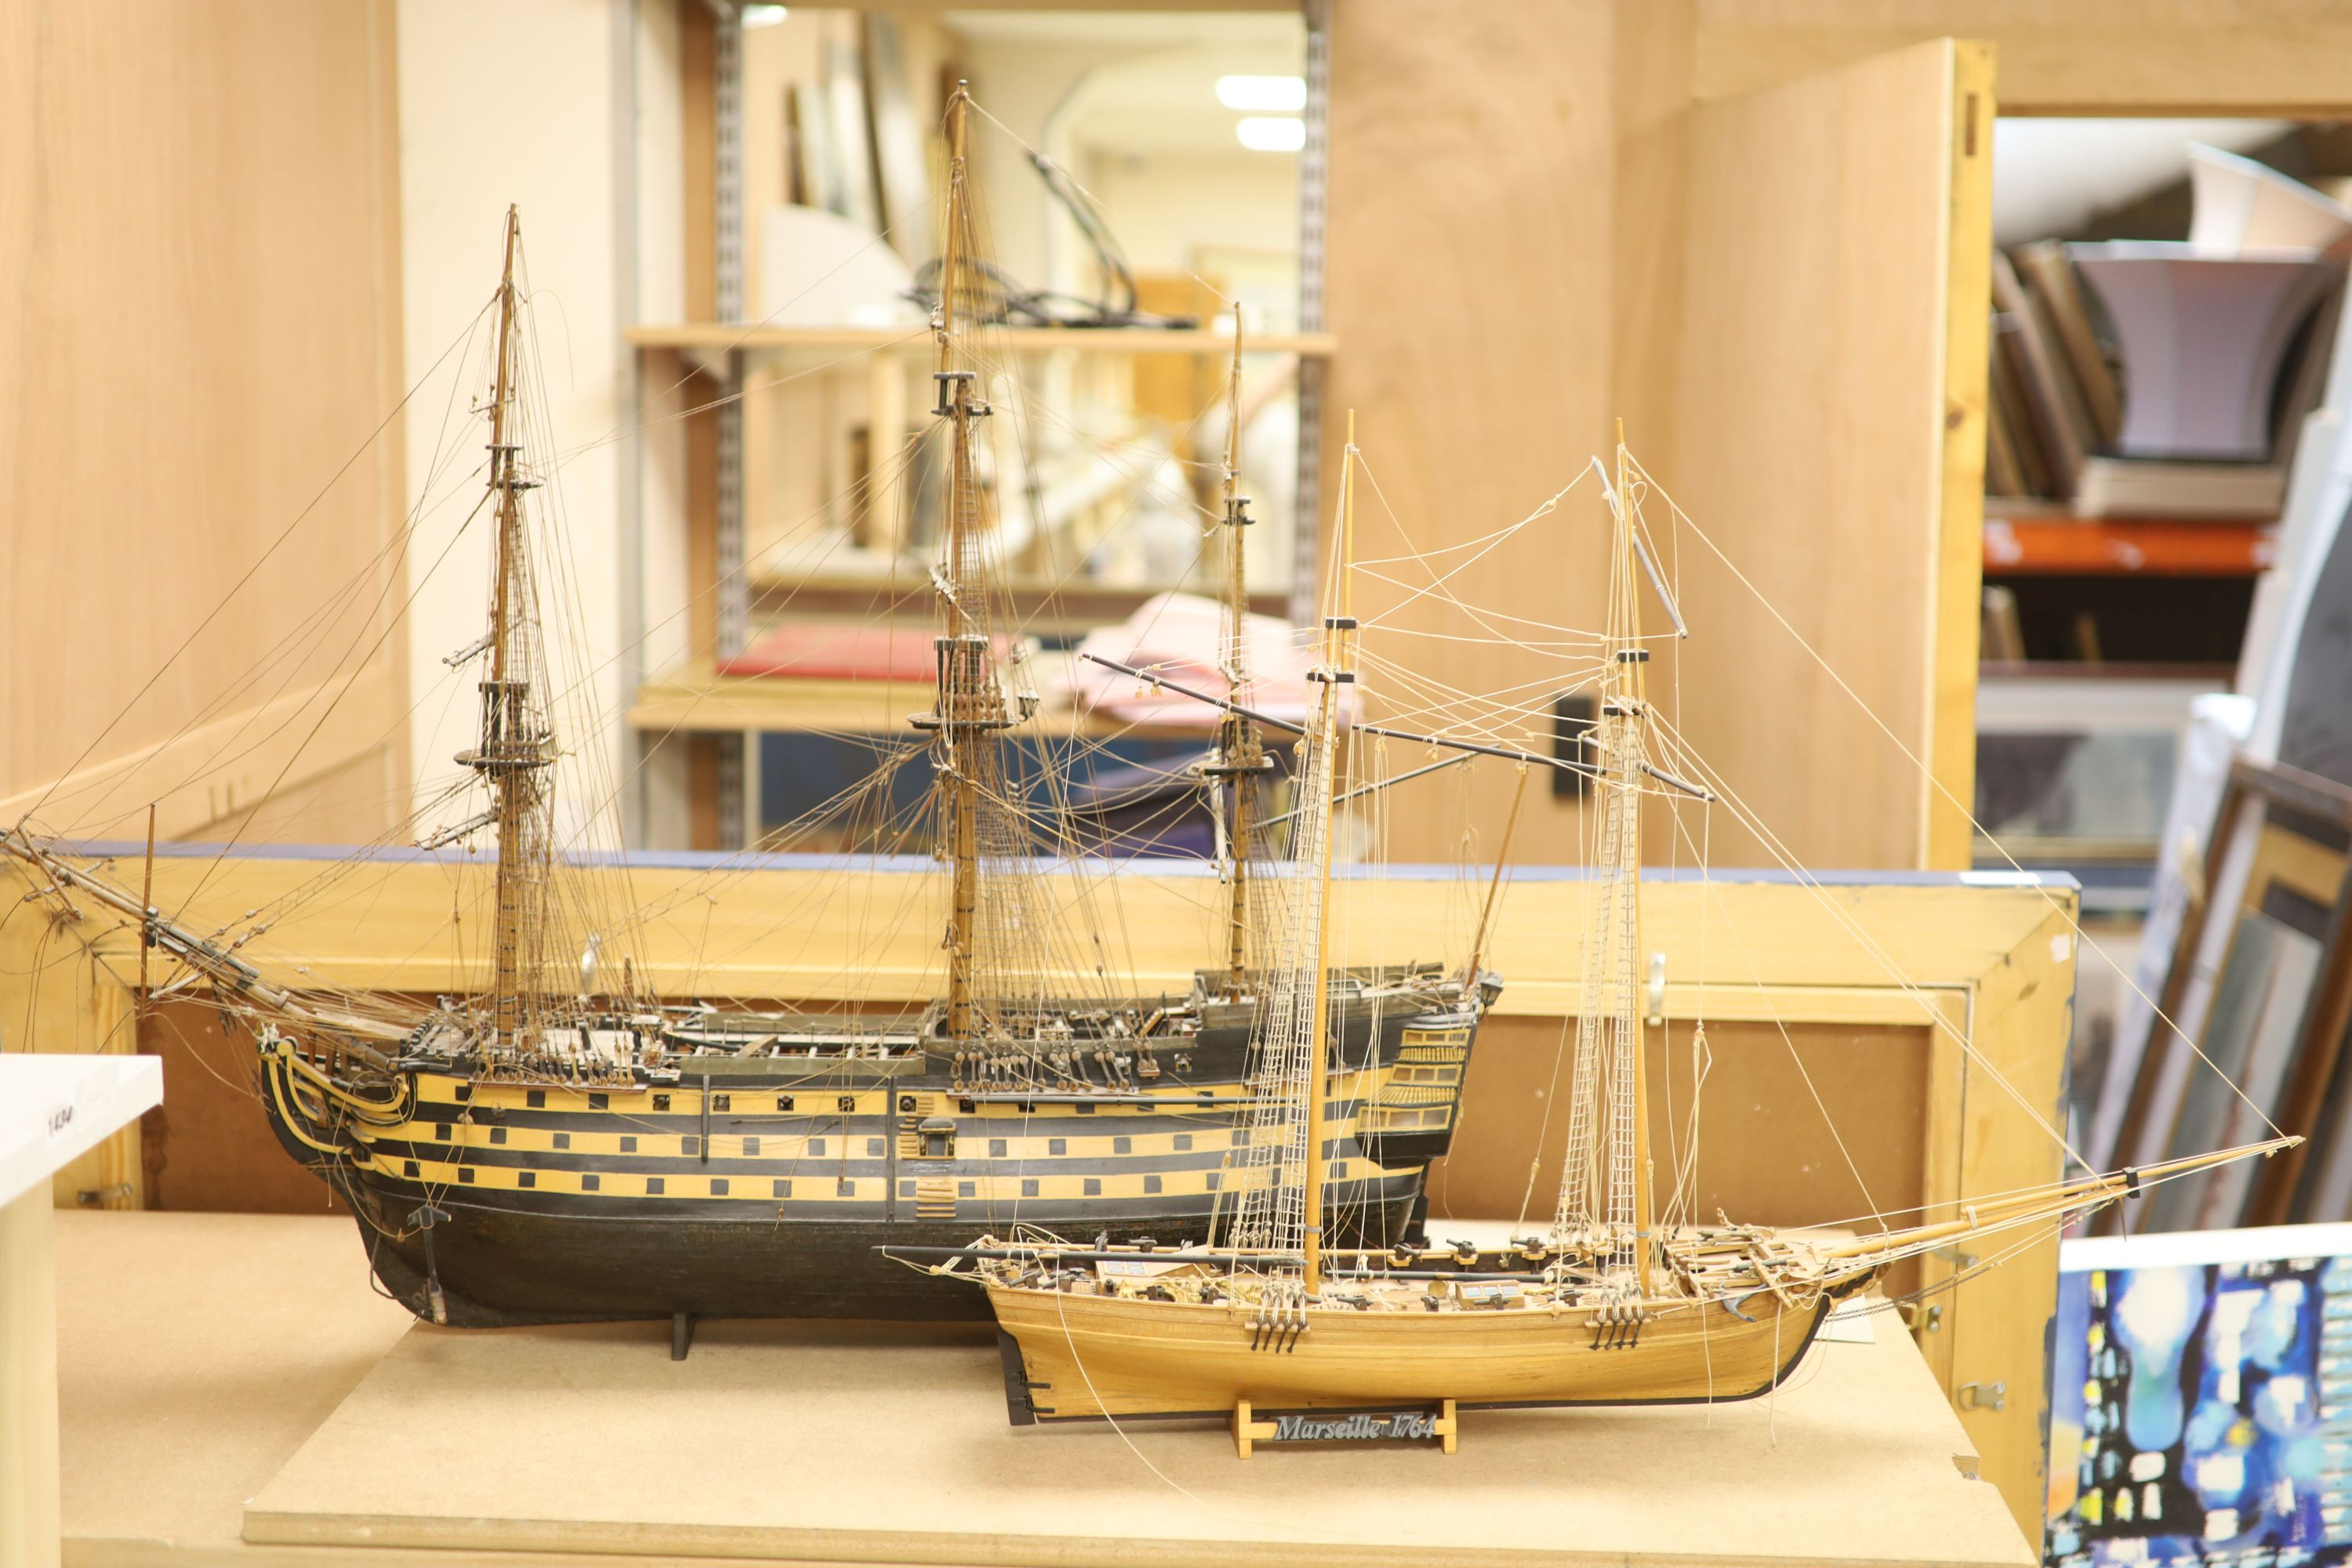 A model of 'The Victory', width 90cm, and a model of 'The Marseille'